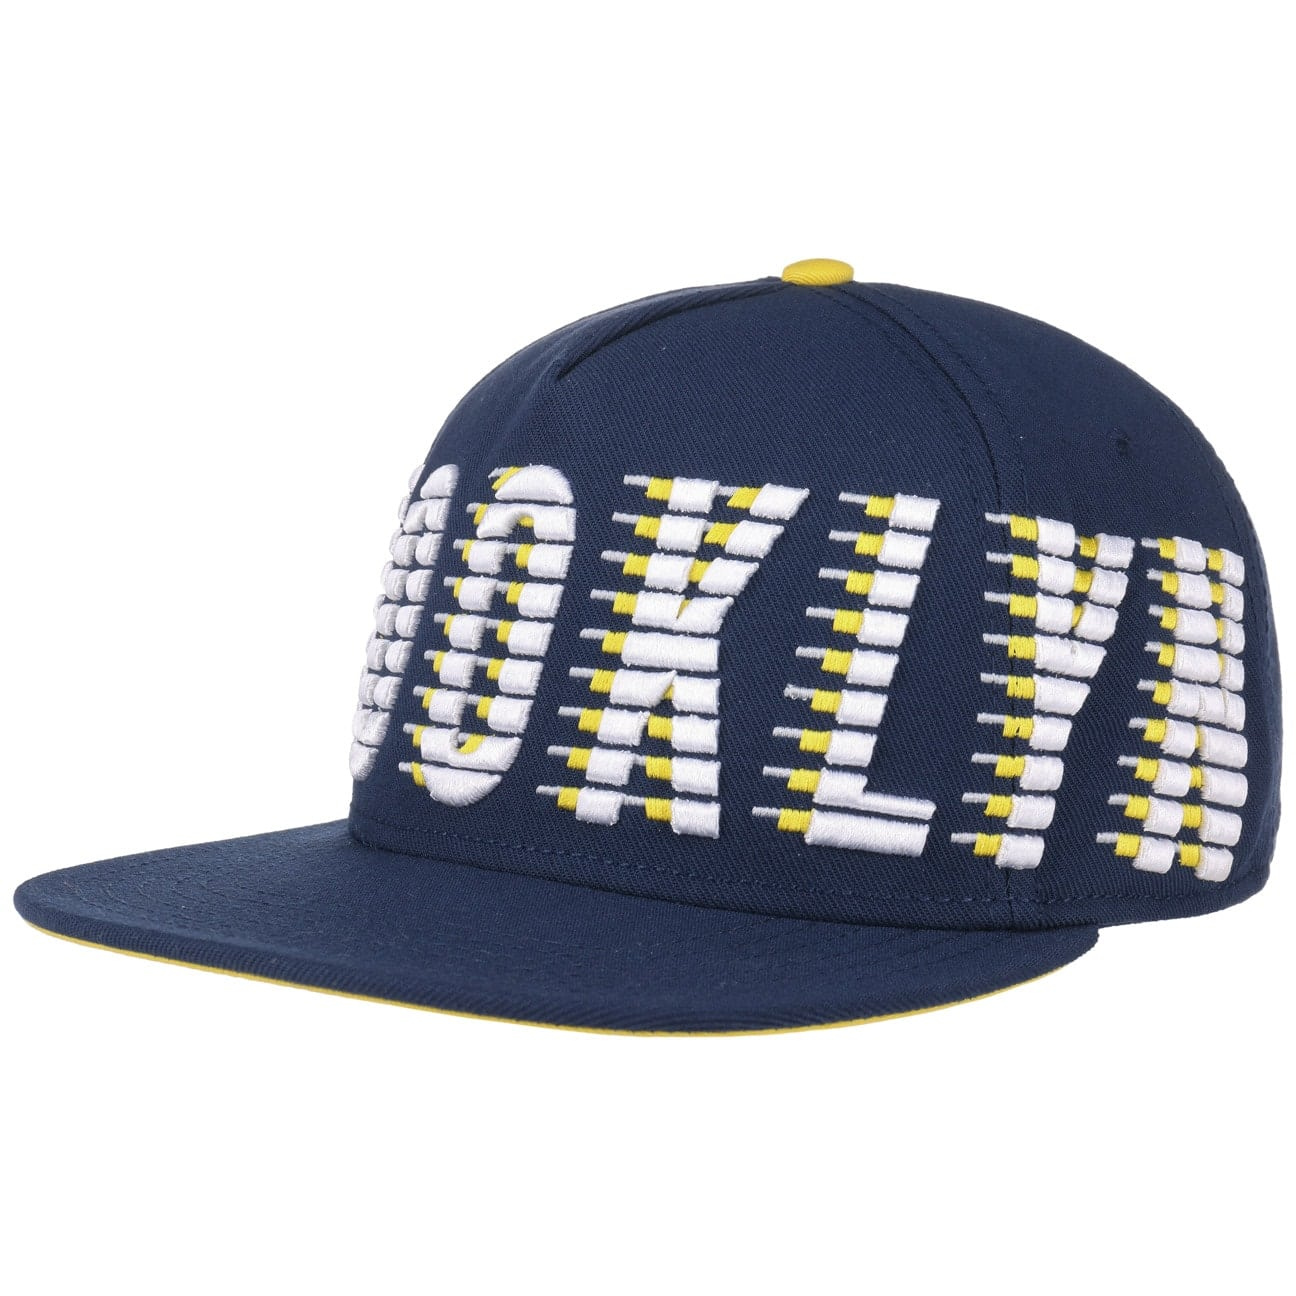 brooklyn-athletics-cap-by-cayler-sons-basecap